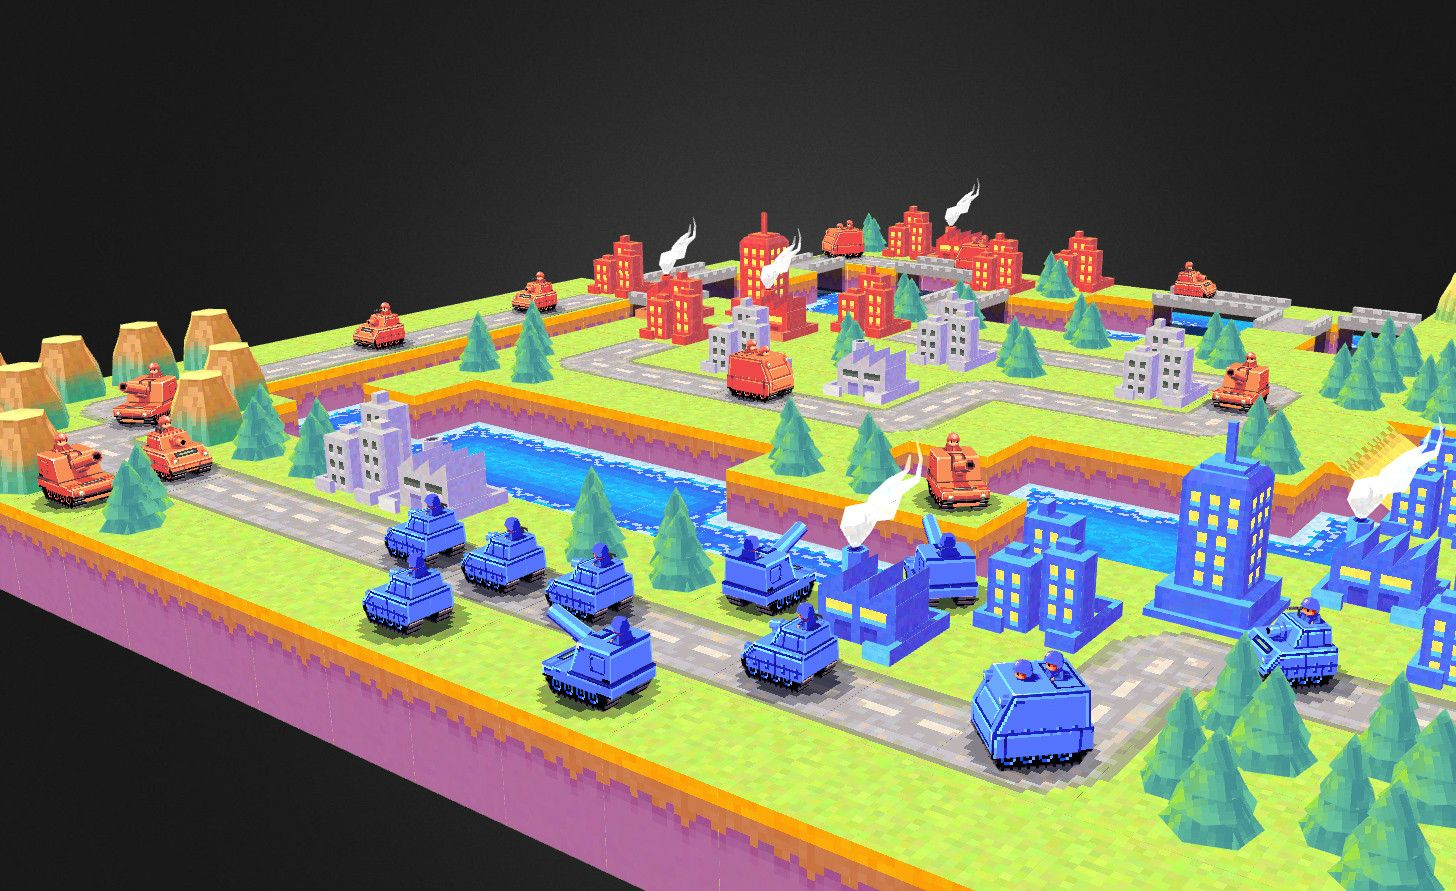 When will retro-inspired games move onto low-poly PS1/N64